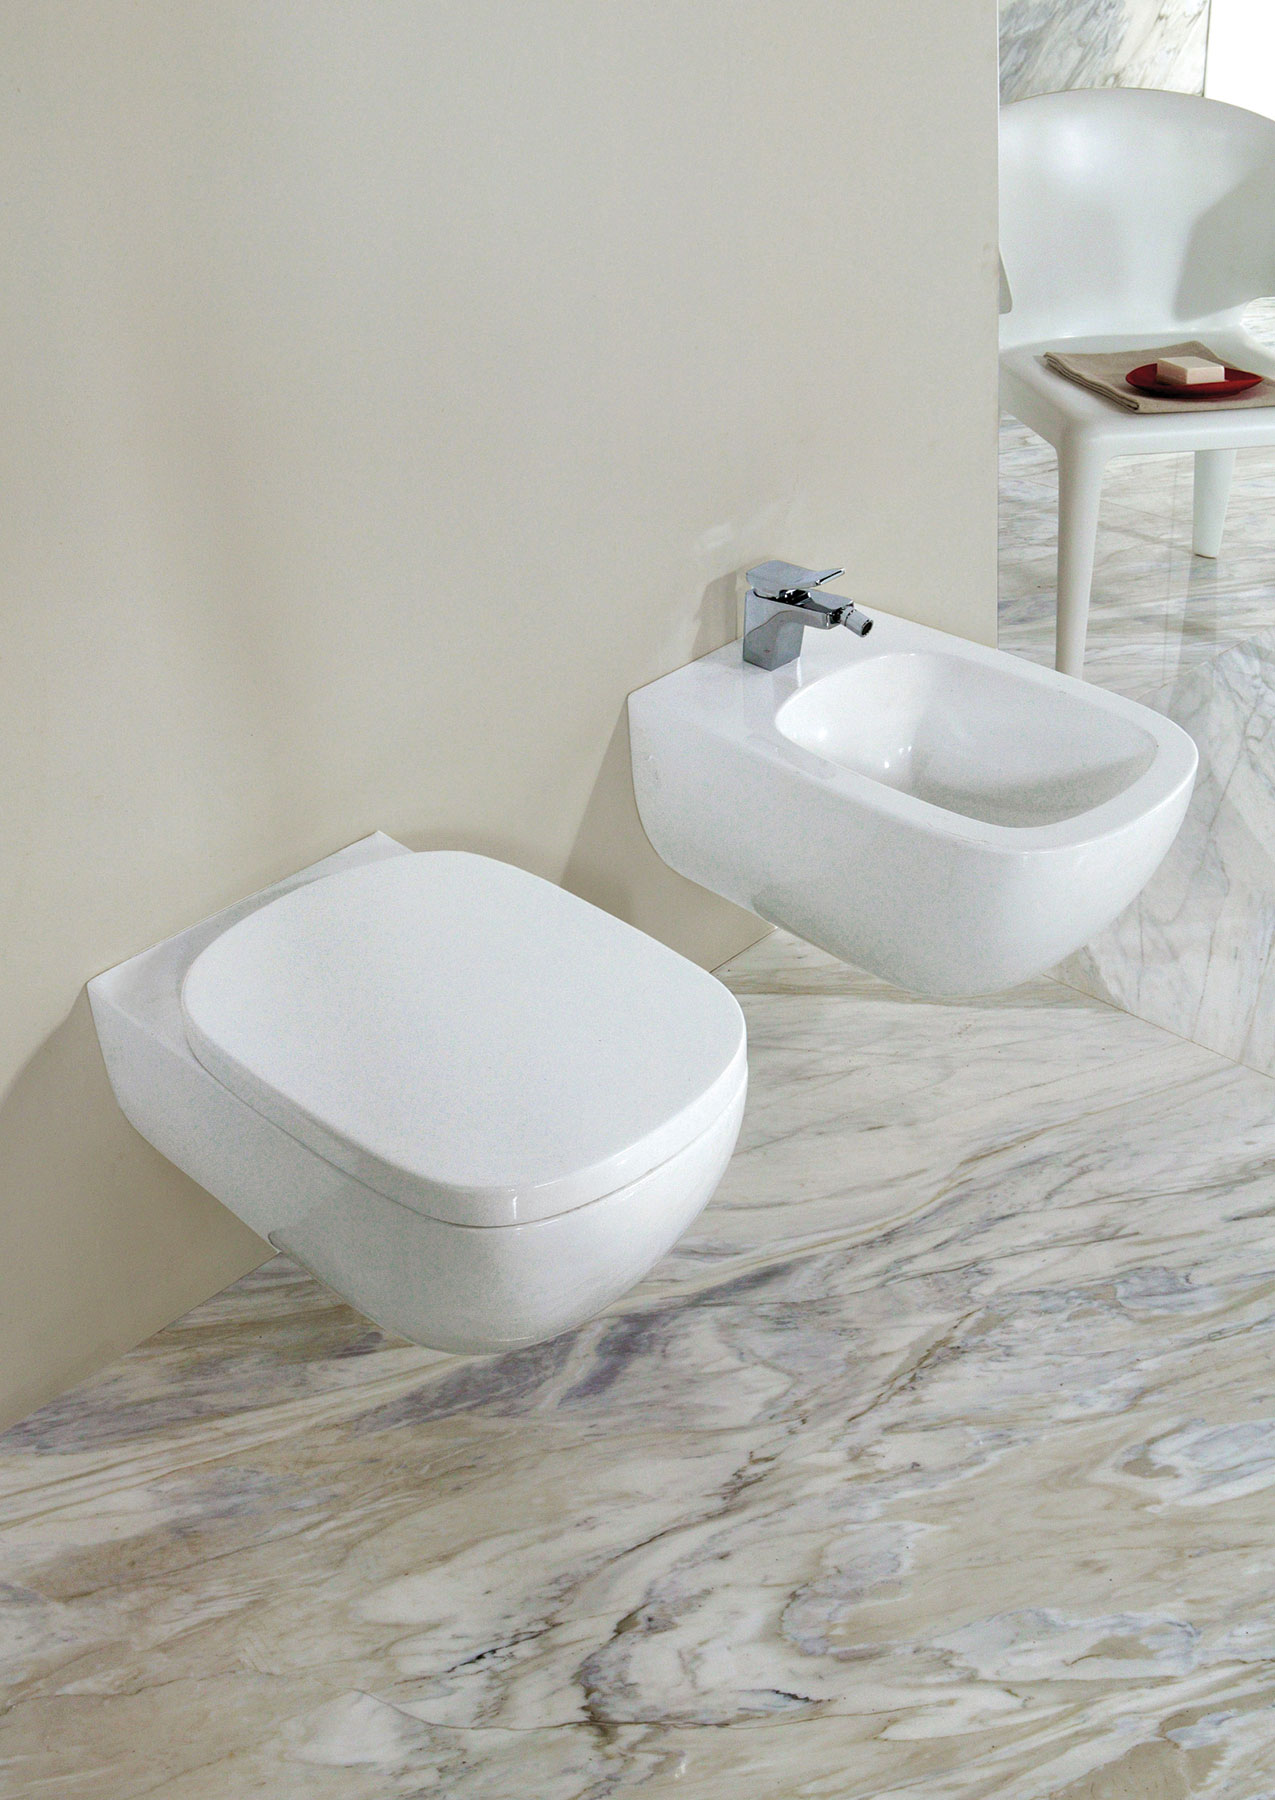 Palomba Wall Mount Bidet first image